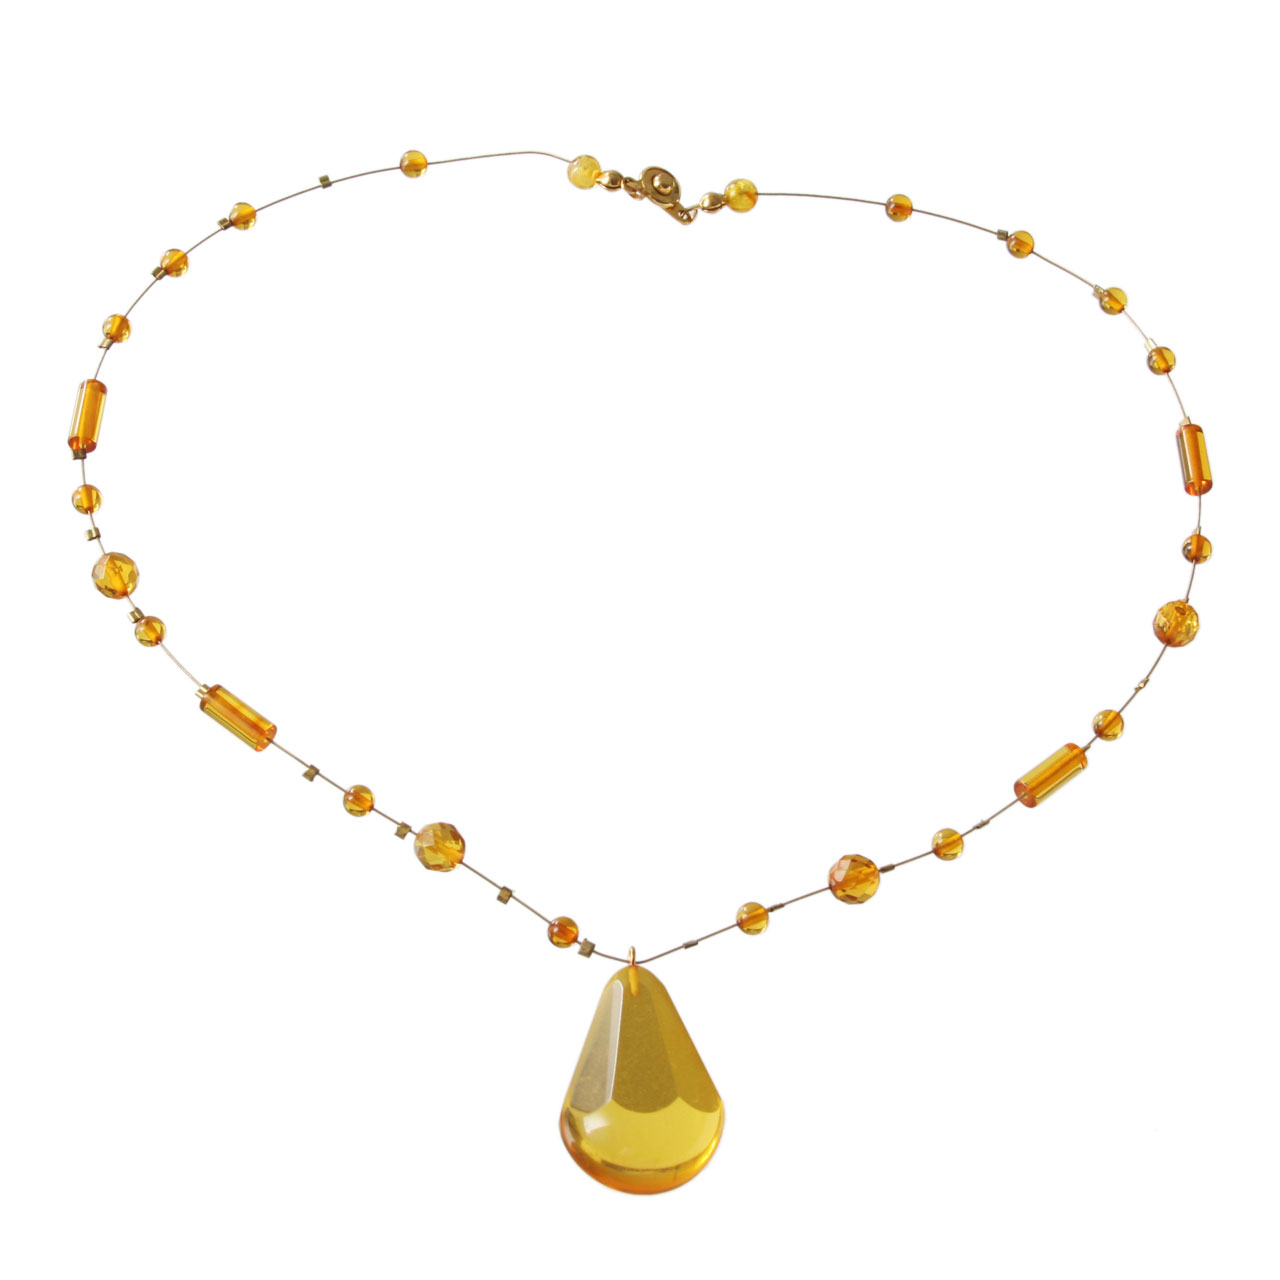 Amber teardrop necklace 1